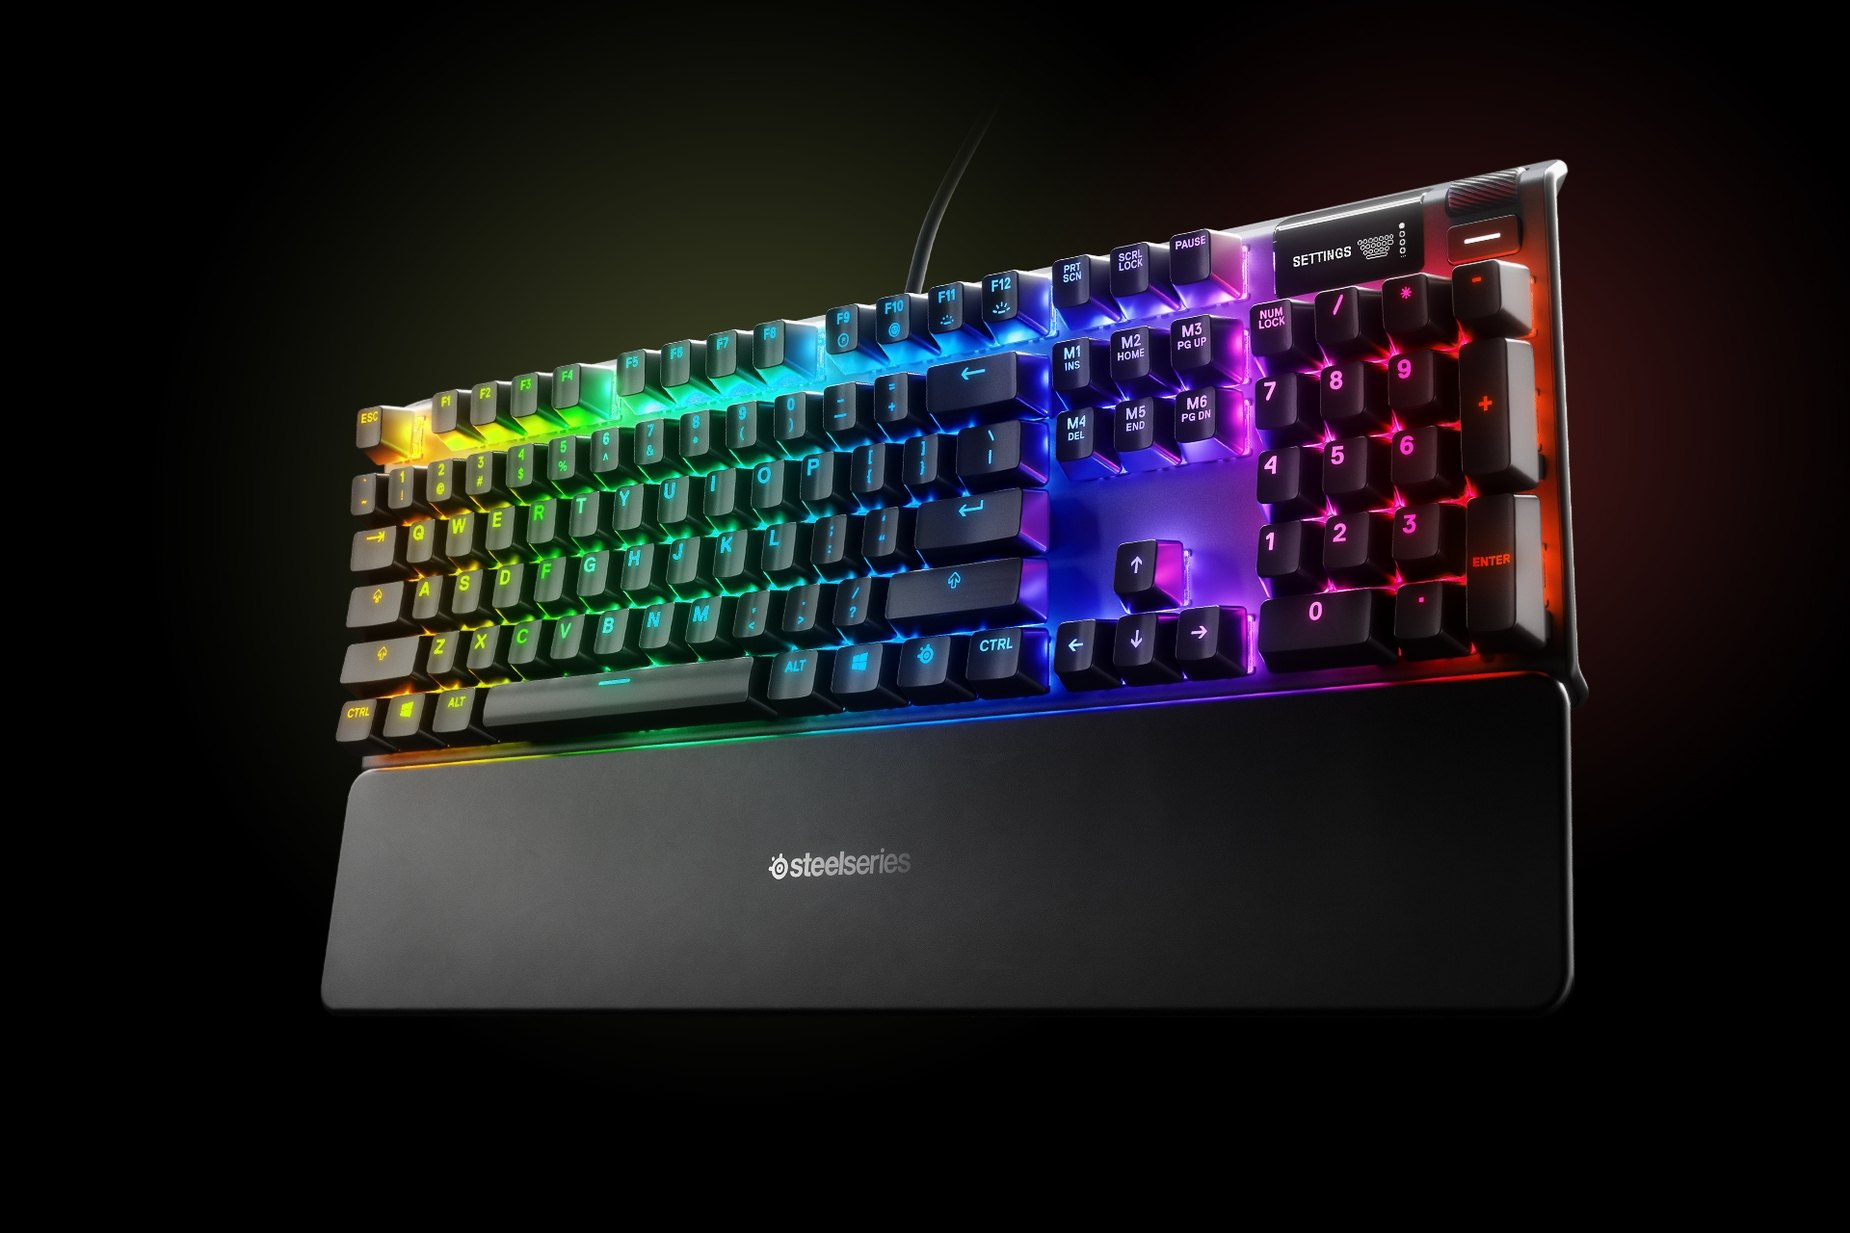 UK English - Apex 7 (Red Switch) gaming keyboard with the illumination lit up on dark background, also shows the OLED screen and controls used to change settings and adjust audio